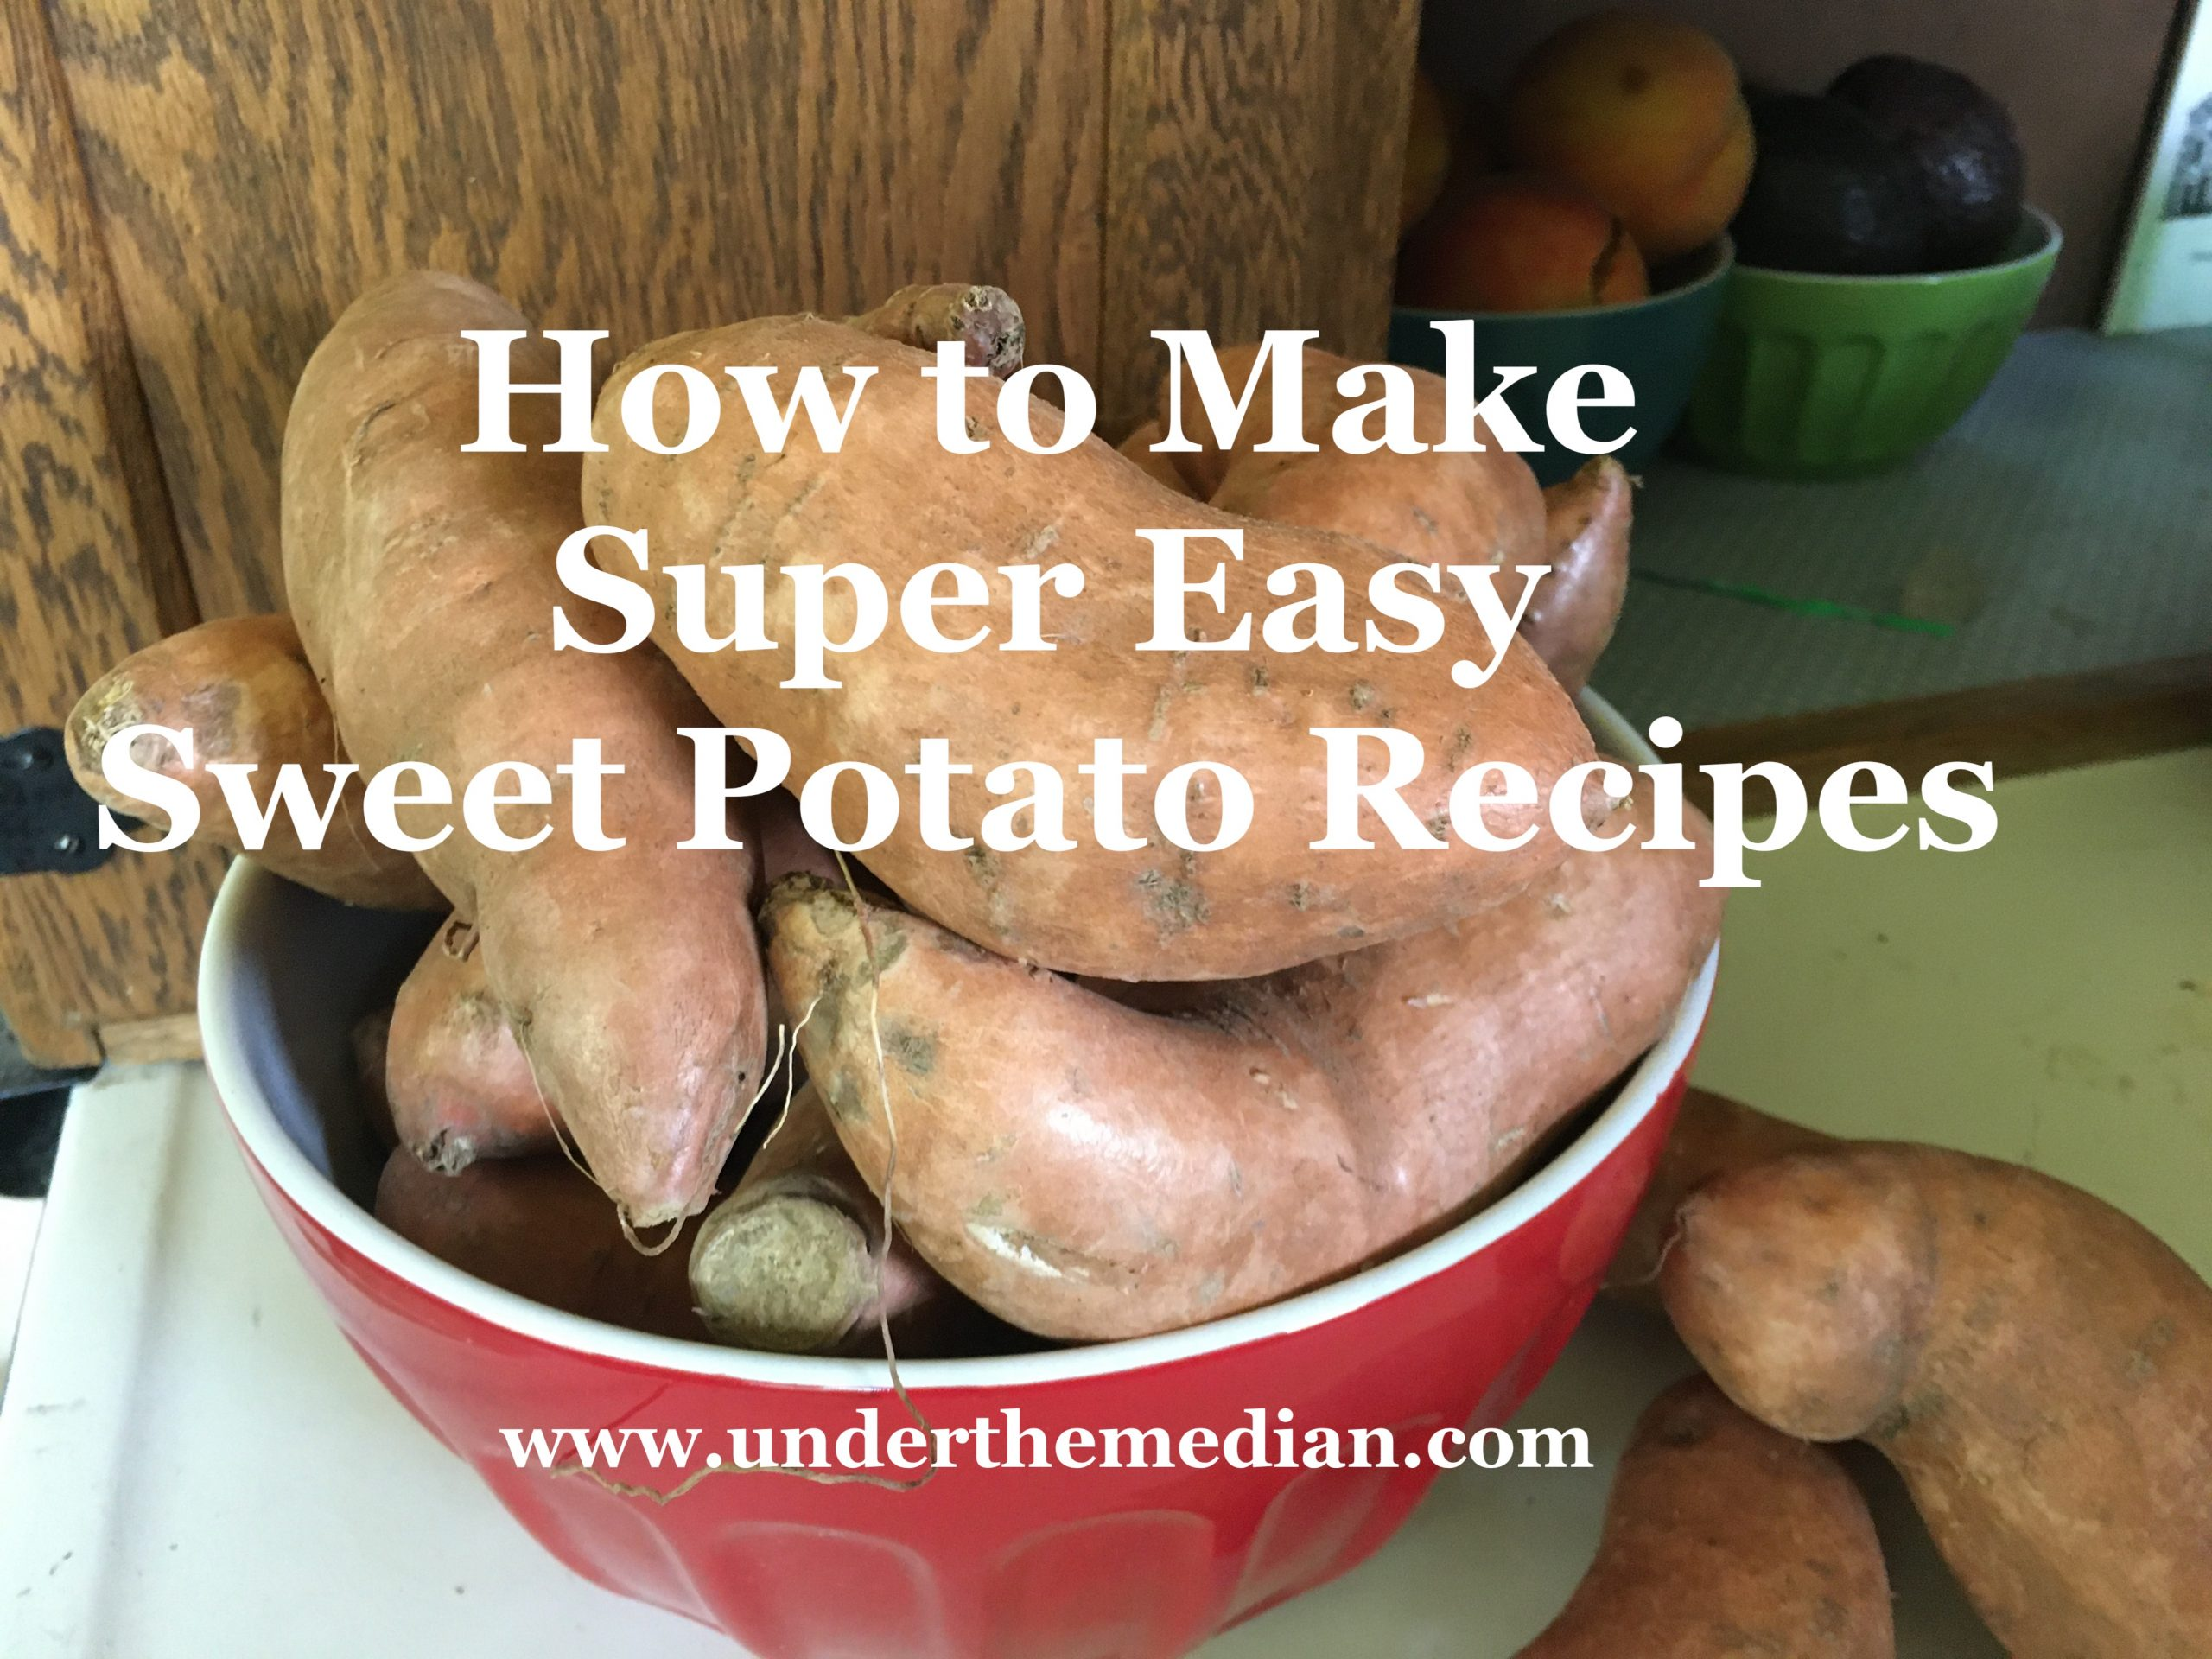 How To Make Super Easy Sweet Potato Recipes